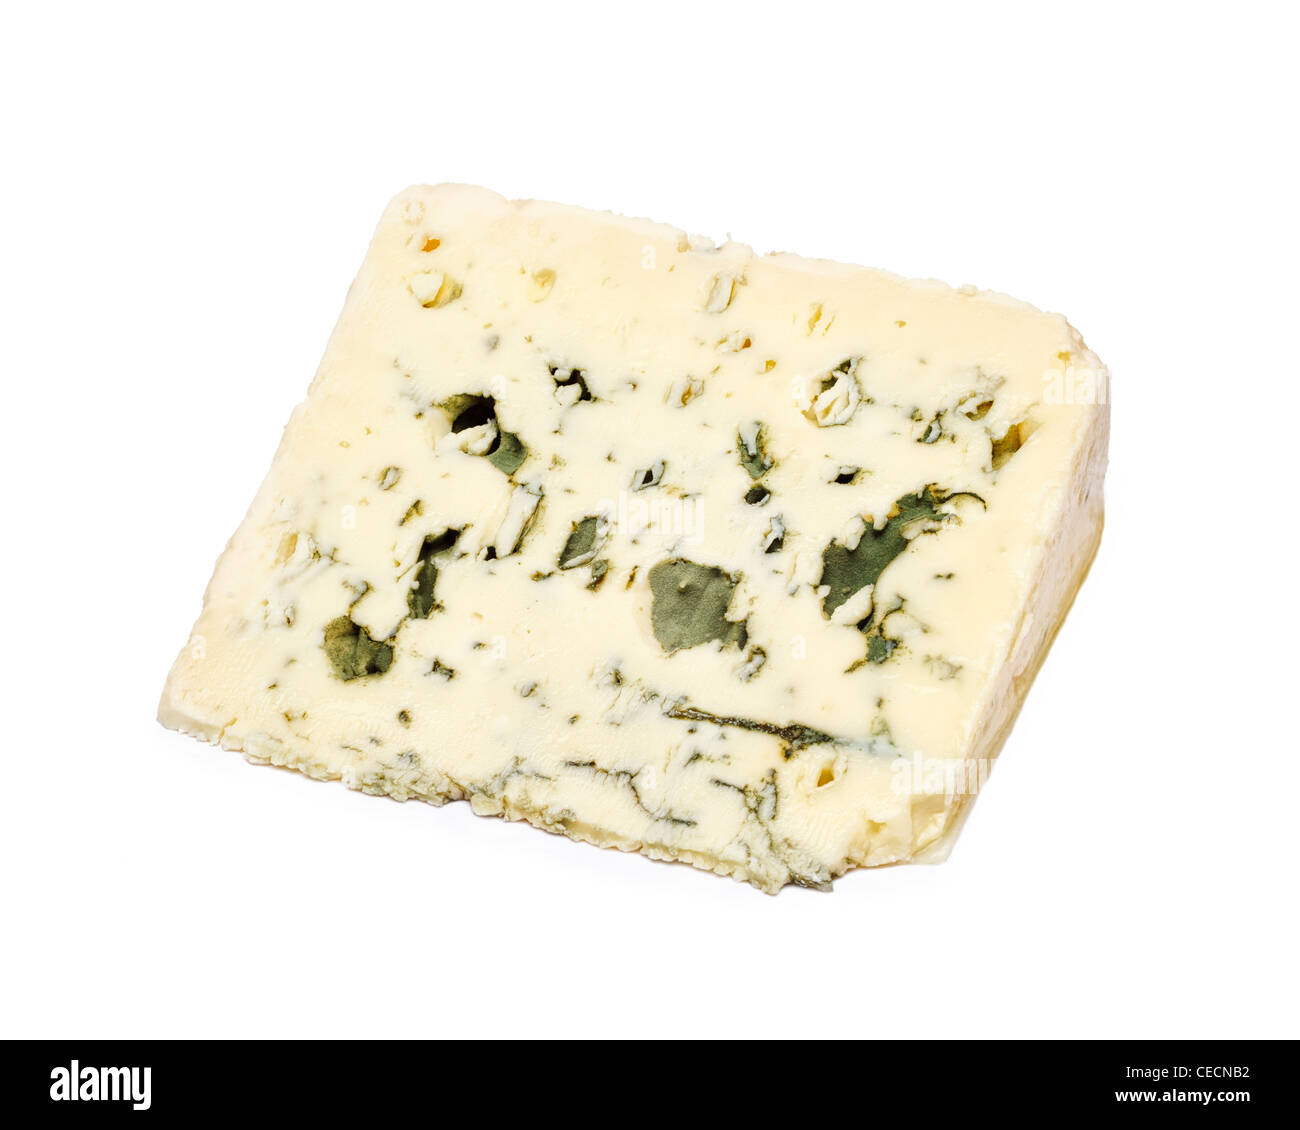 Blue cheese - Roquefort - on white background - Stock Image